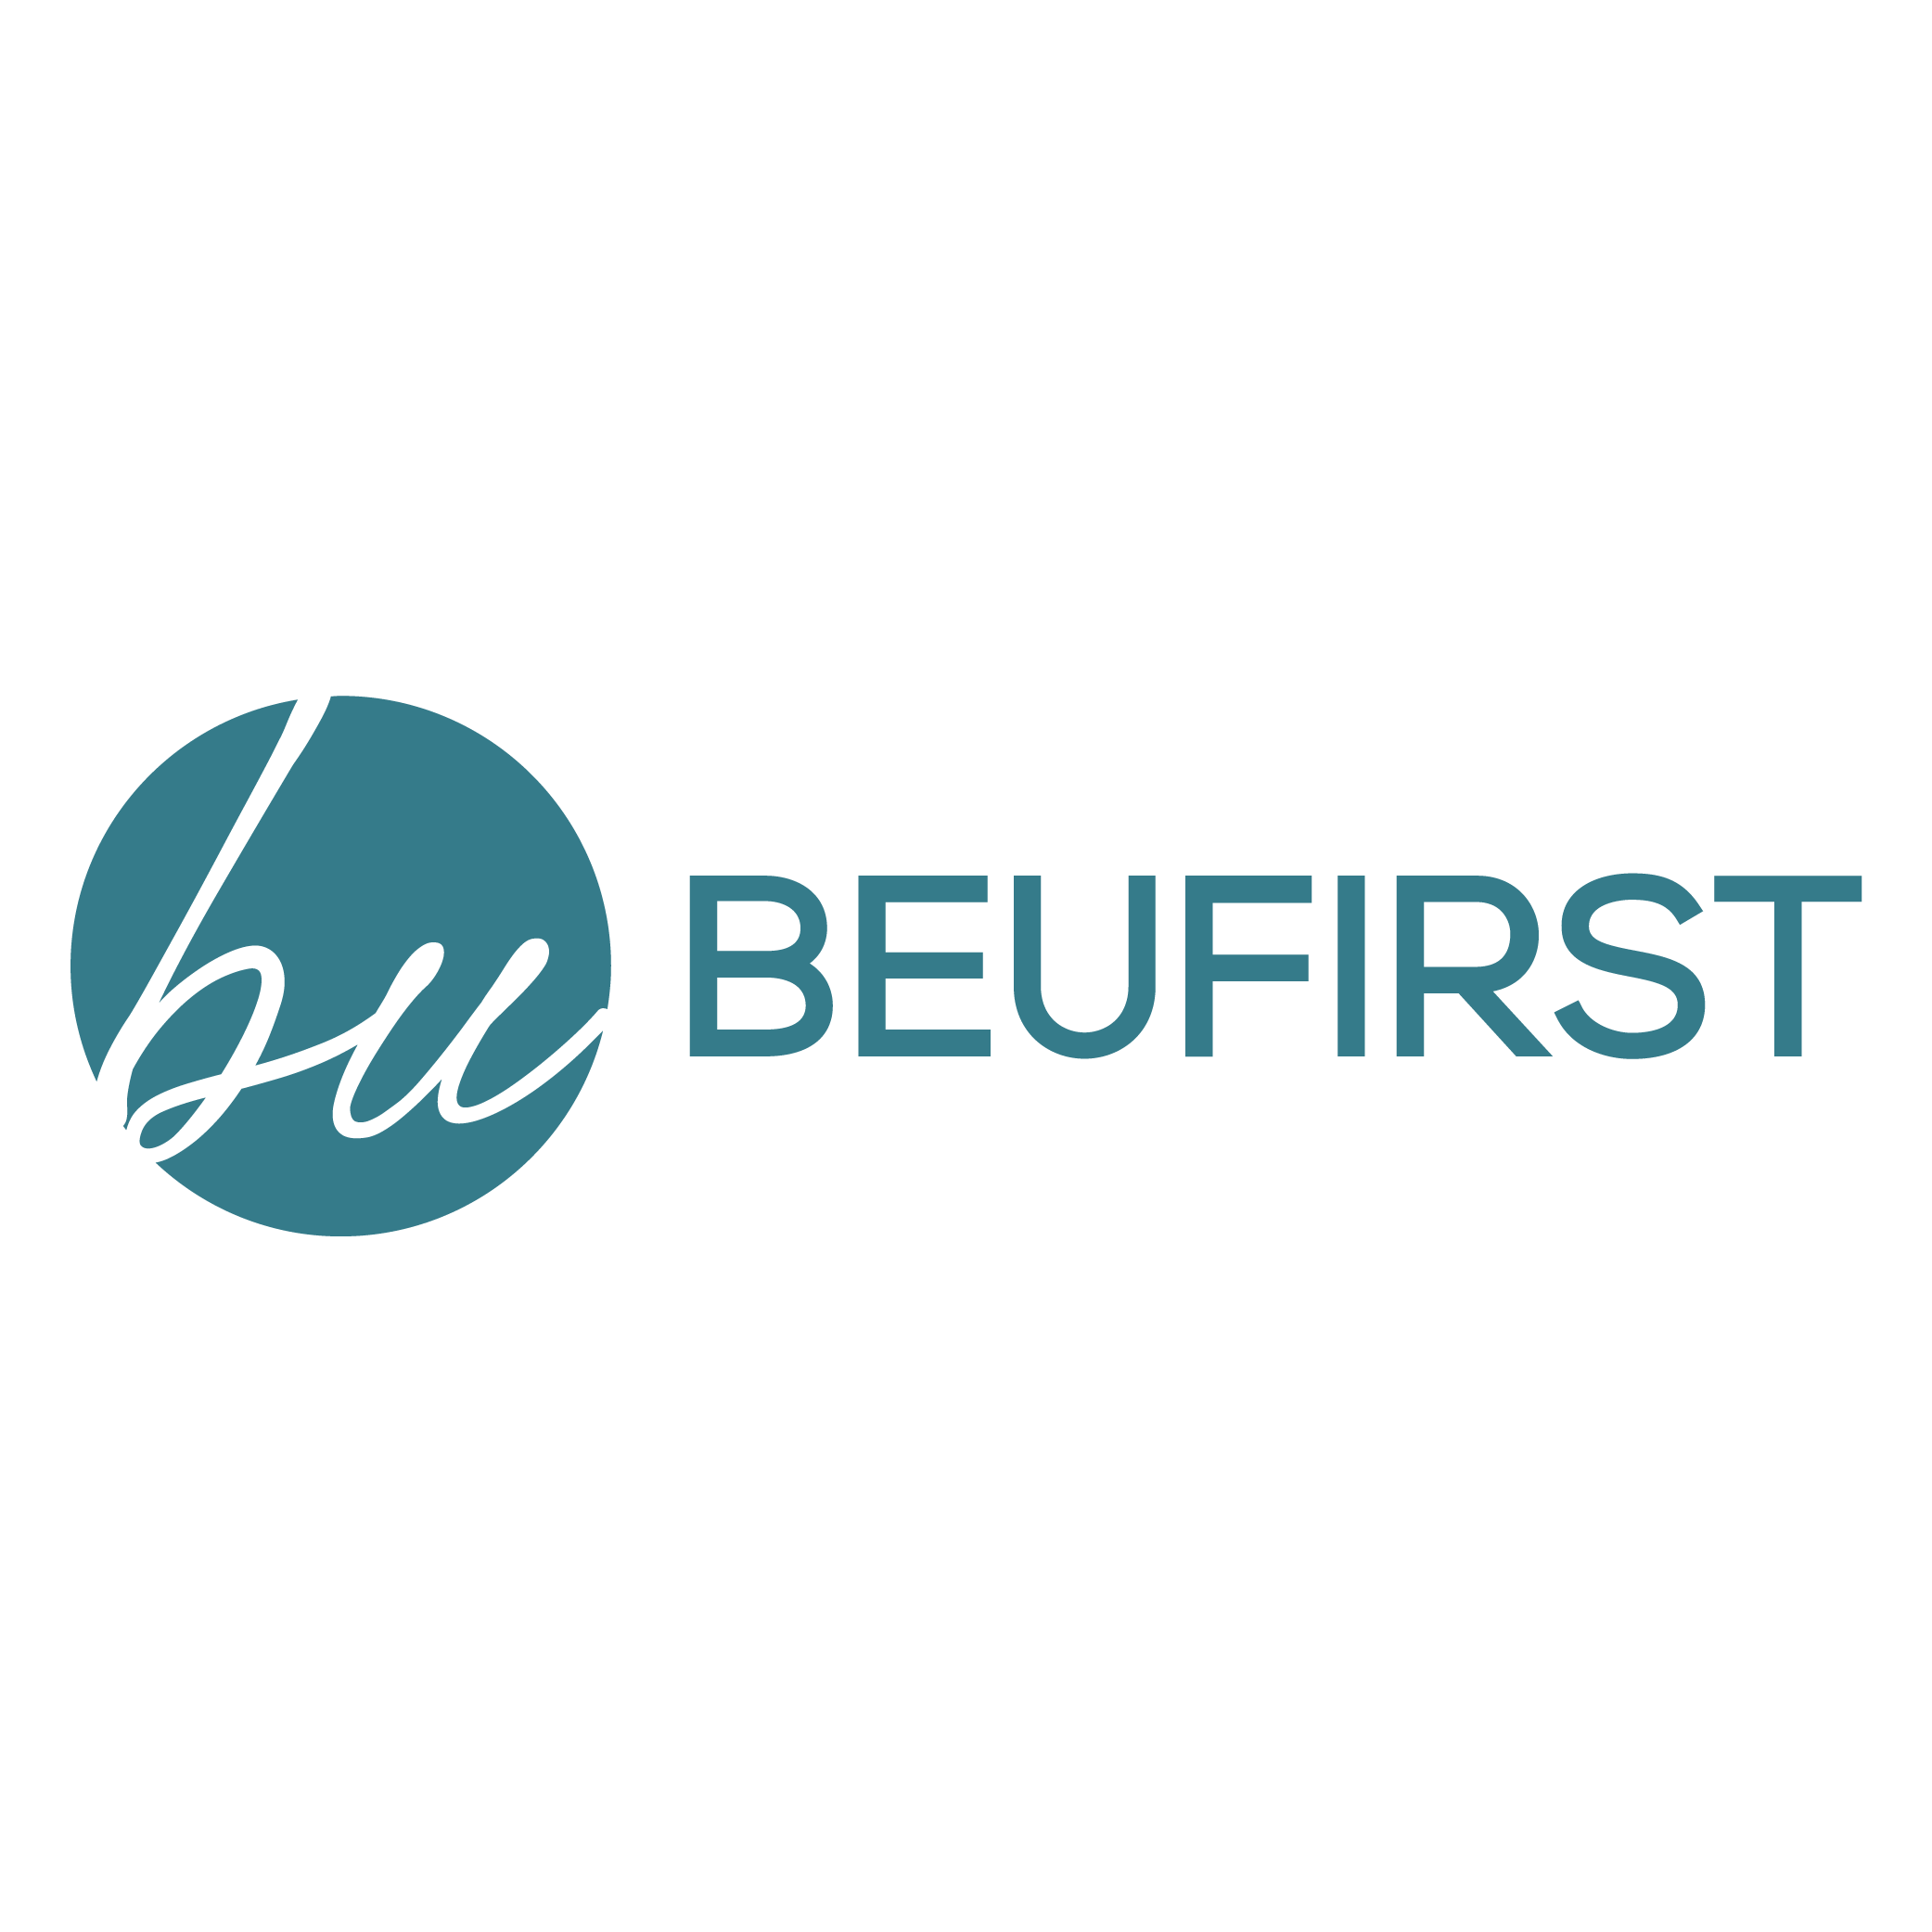 BEUFIRST